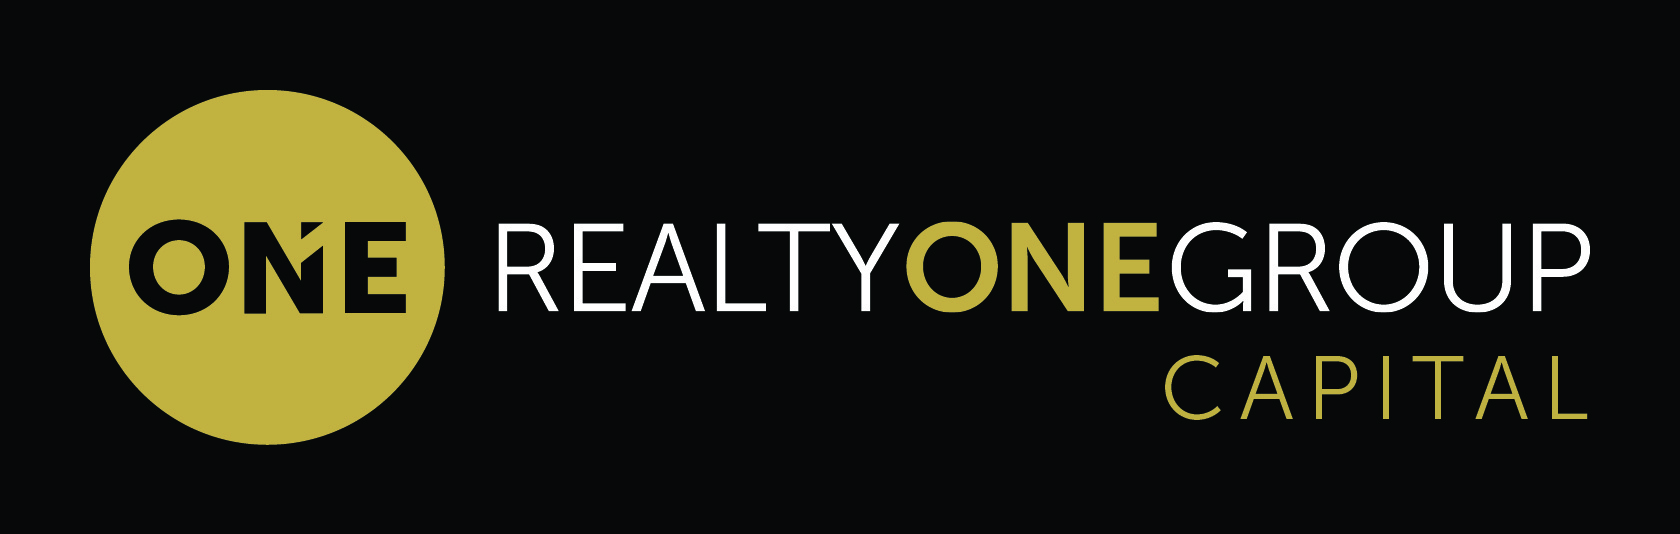 Realty One Group Capital Properties Black